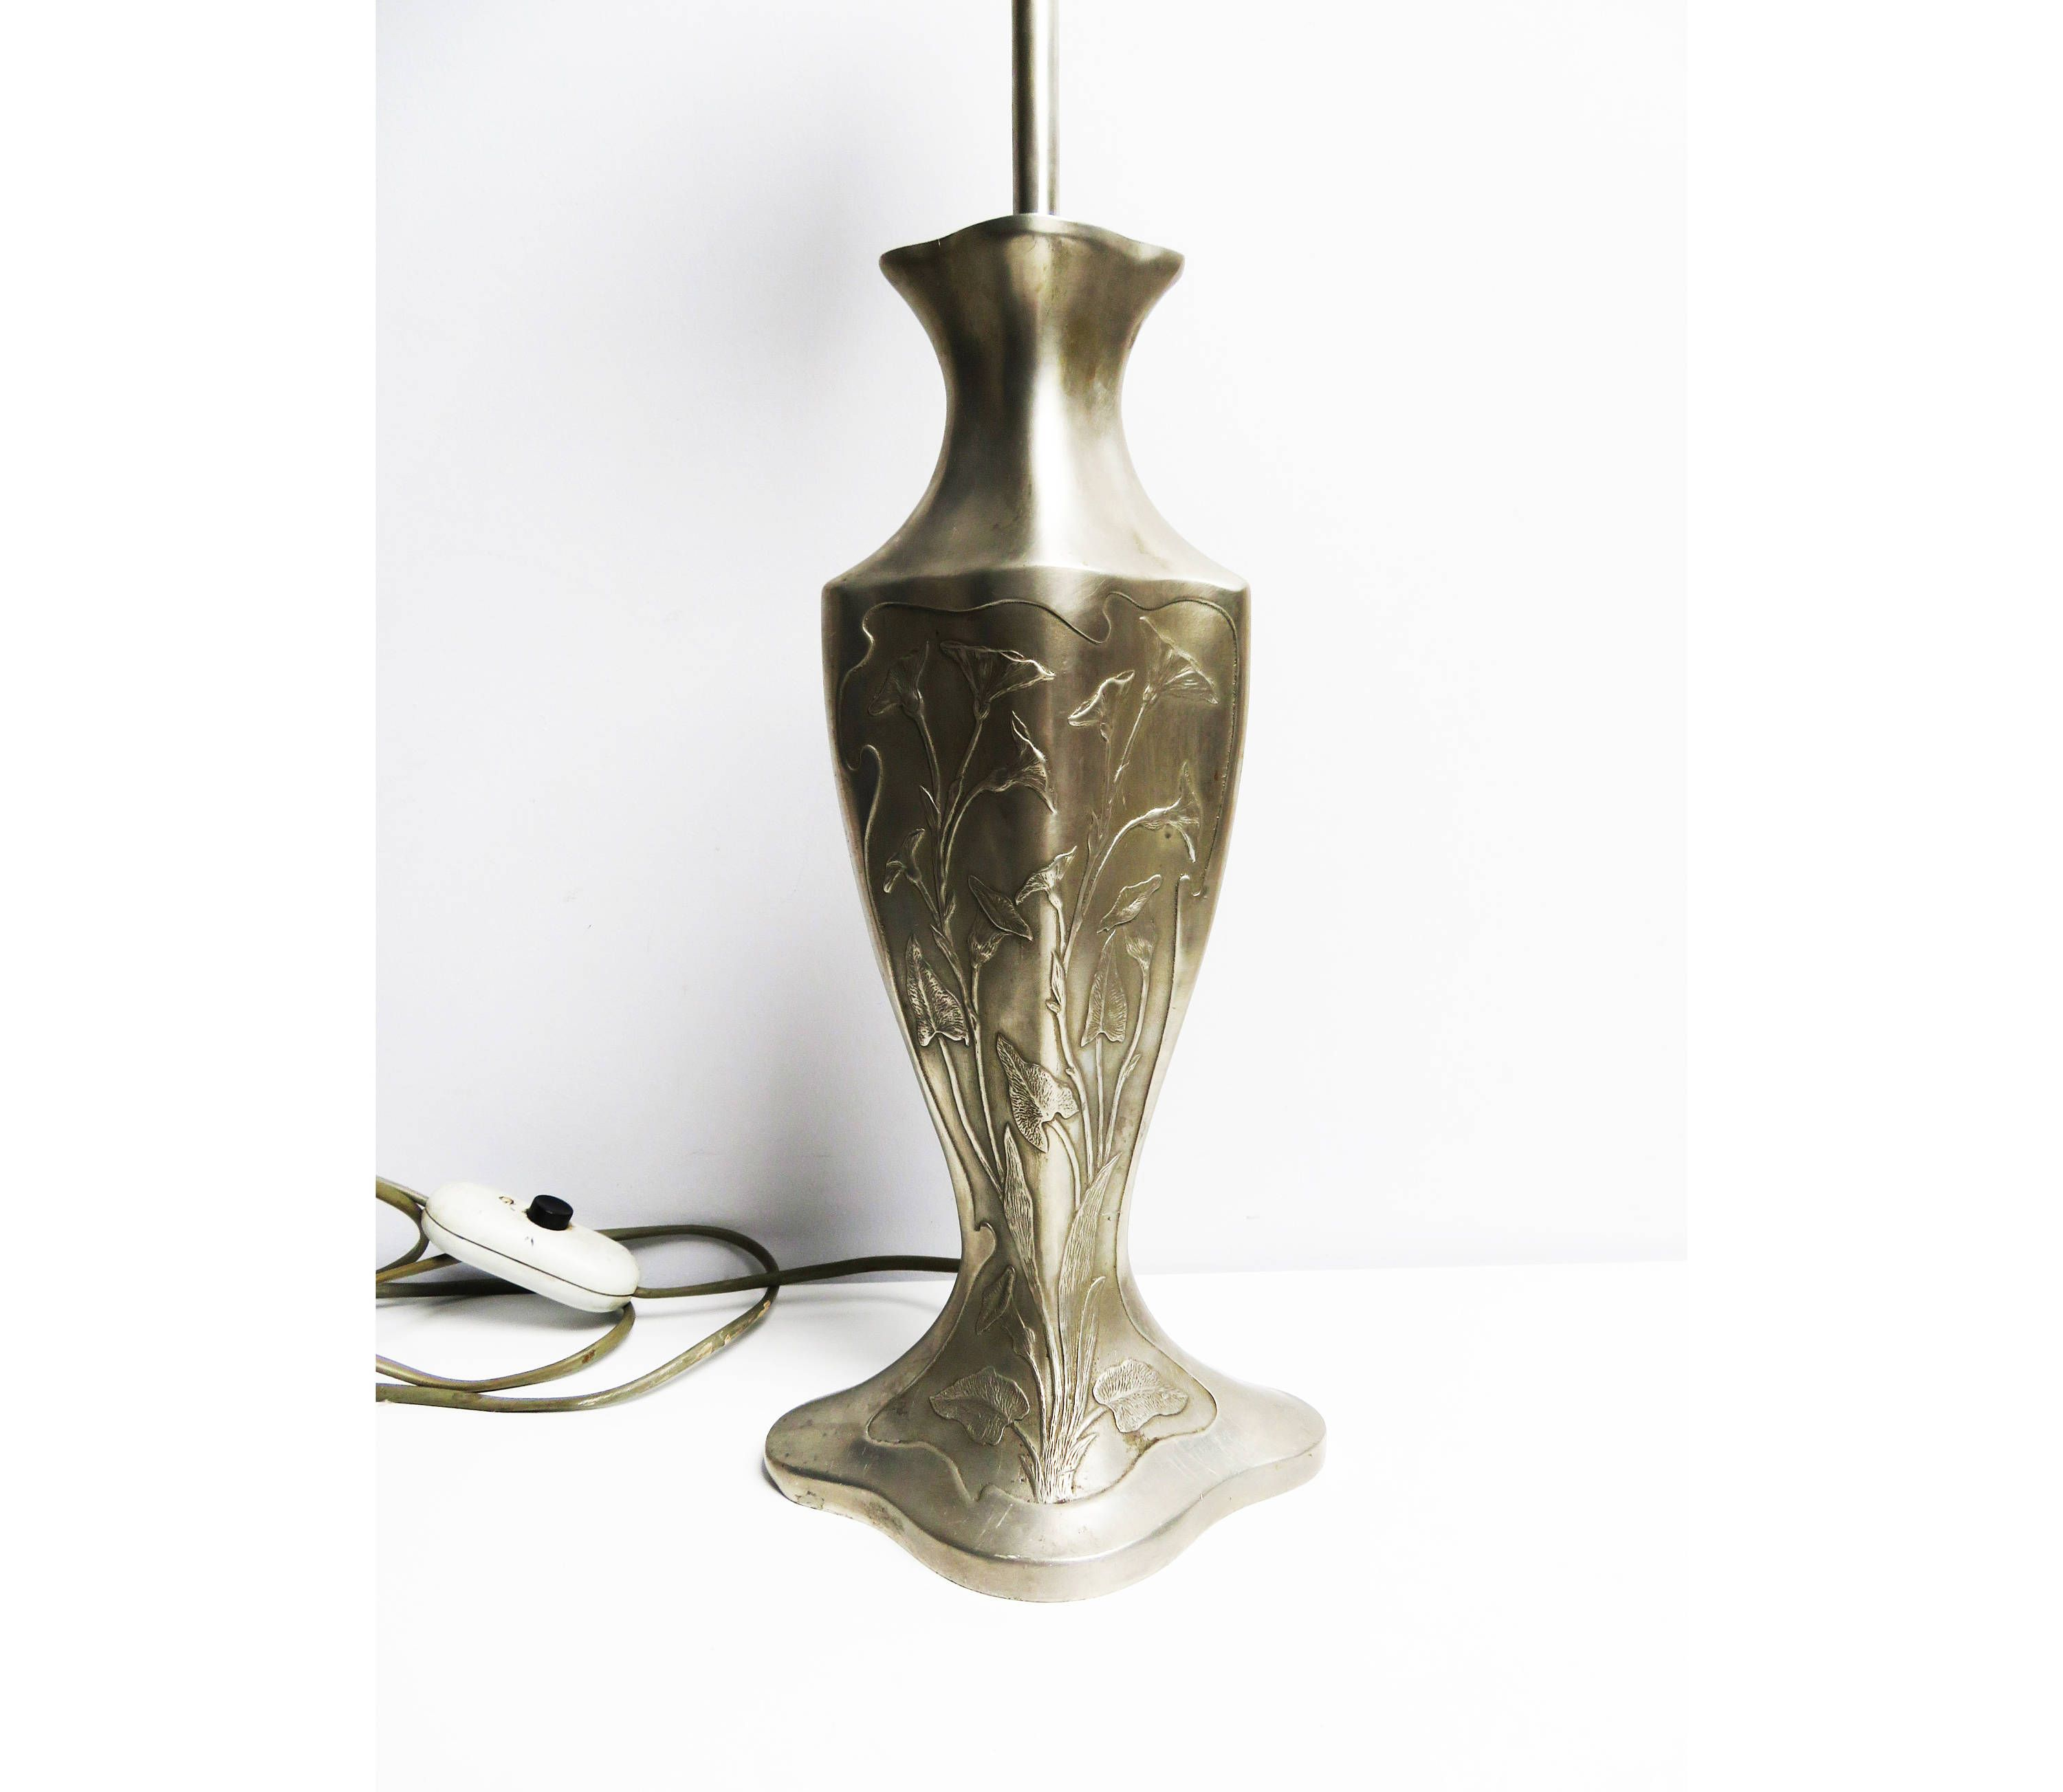 Pin by emma on ebyvintageetsy vintage finds pinterest lamp electrical wiring lamp bases vintage art table lamps art nouveau pewter tin tin metal tin metal greentooth Images